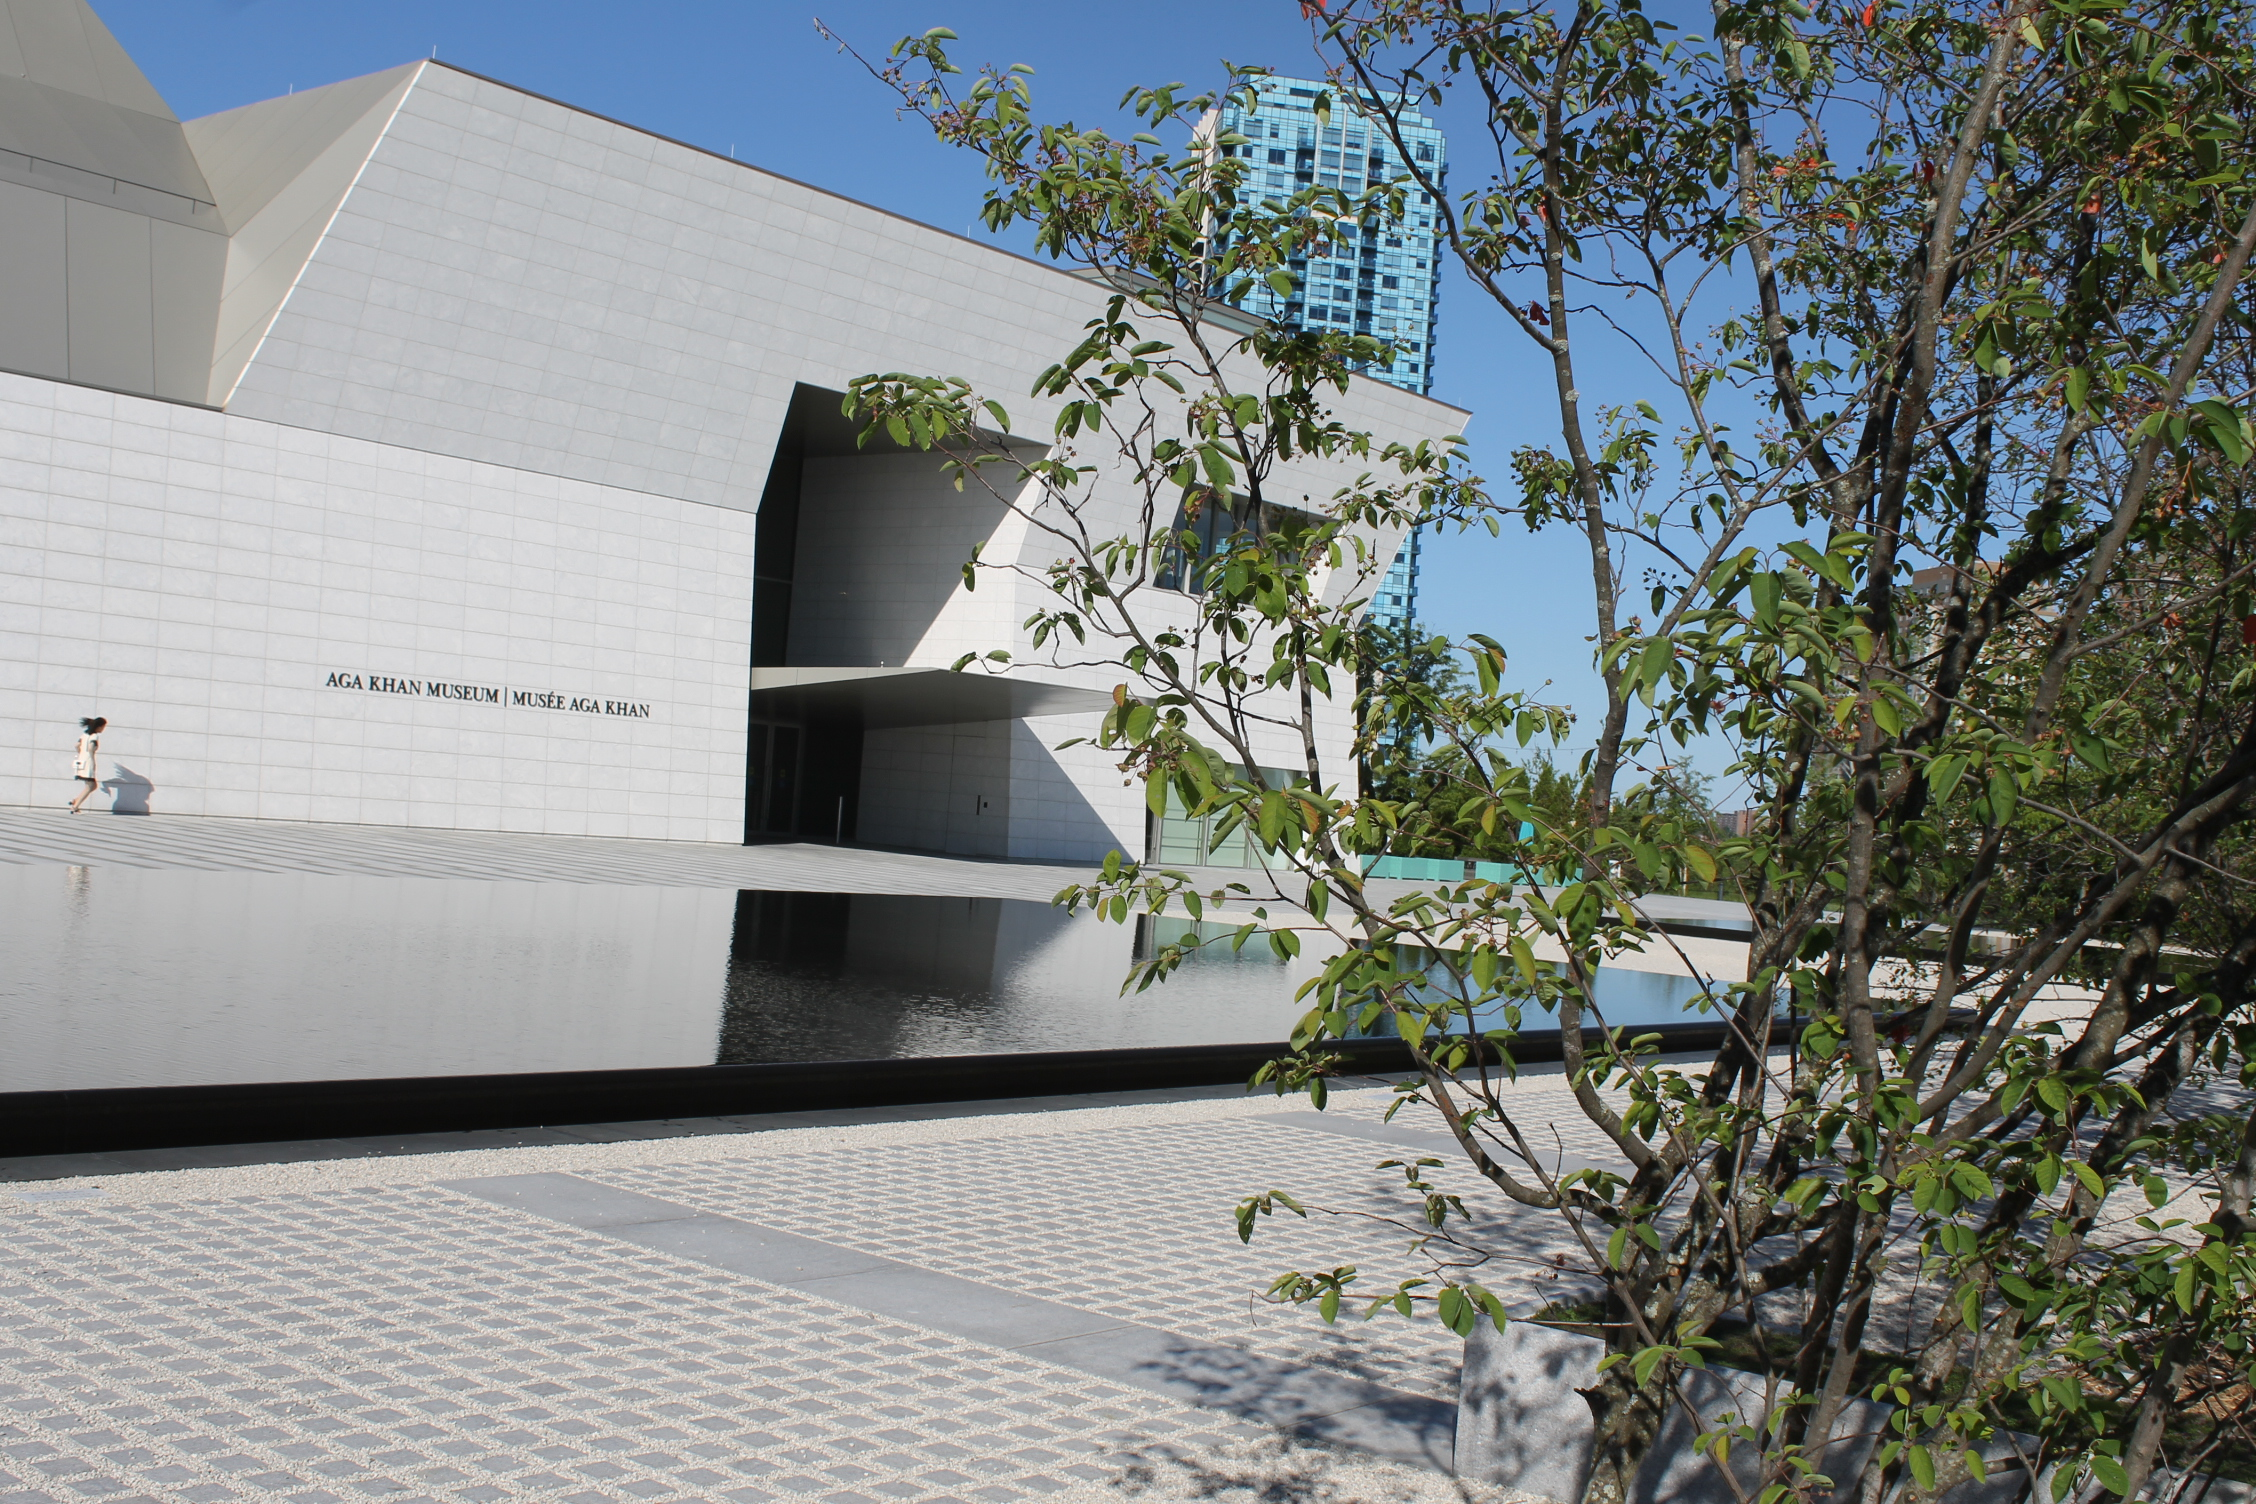 Picture of the accessible entrance of the Aga Khan Museum